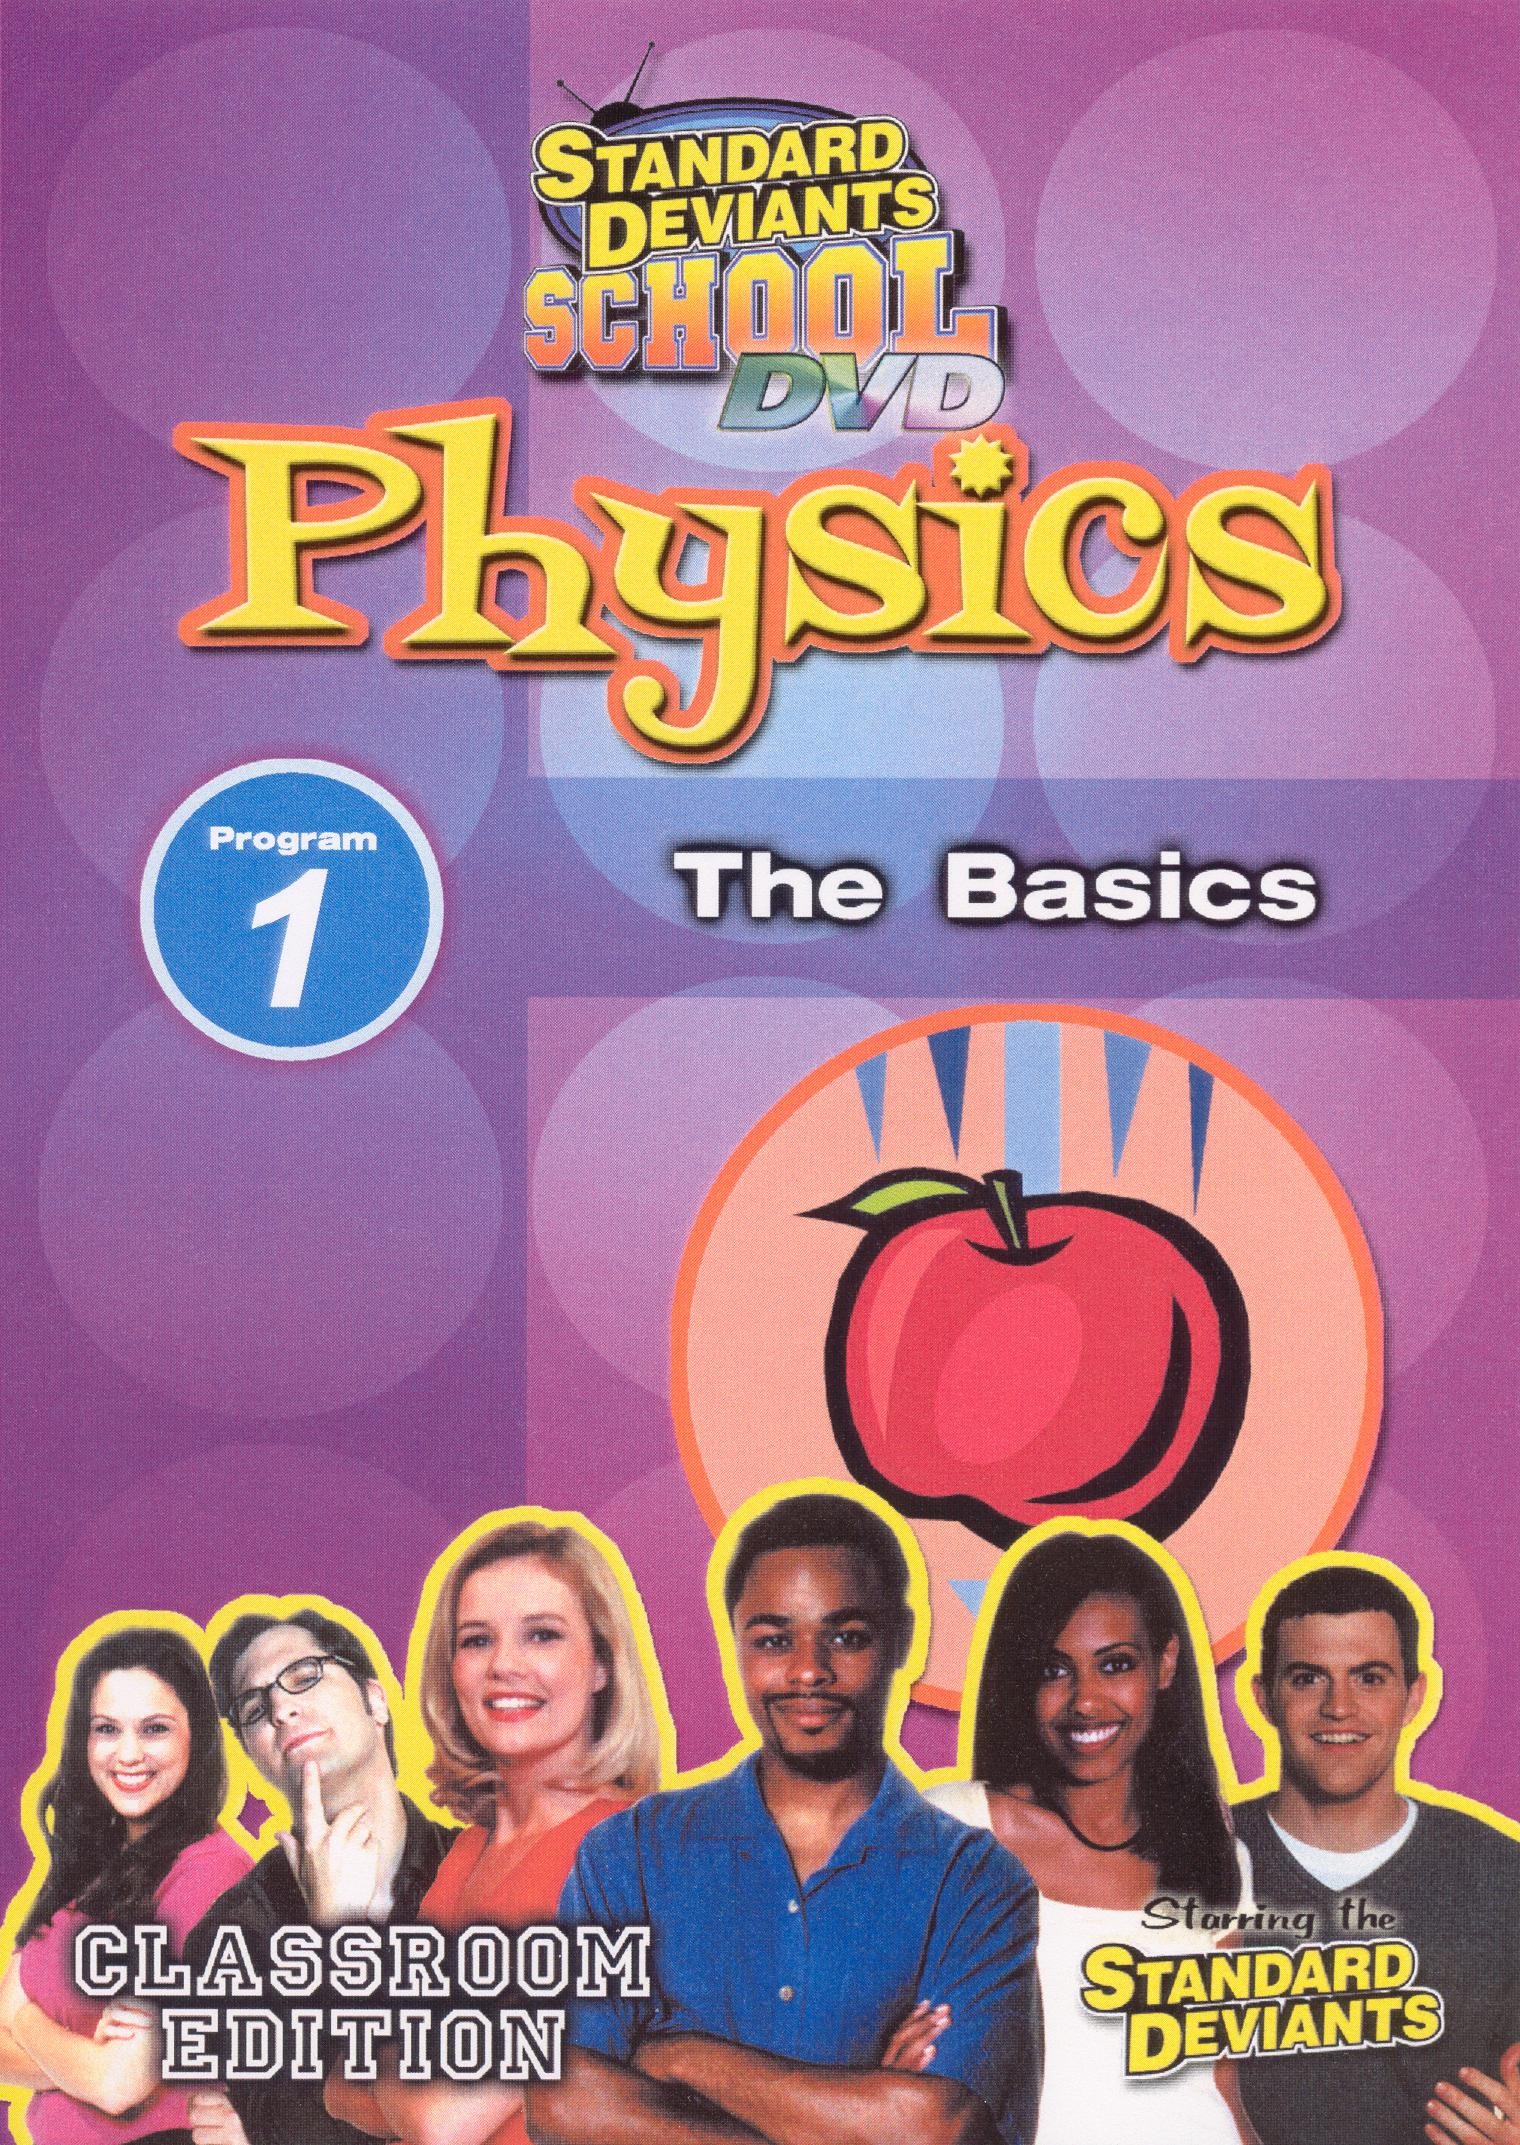 Standard Deviants School: Physics, Program 1 - The Basics